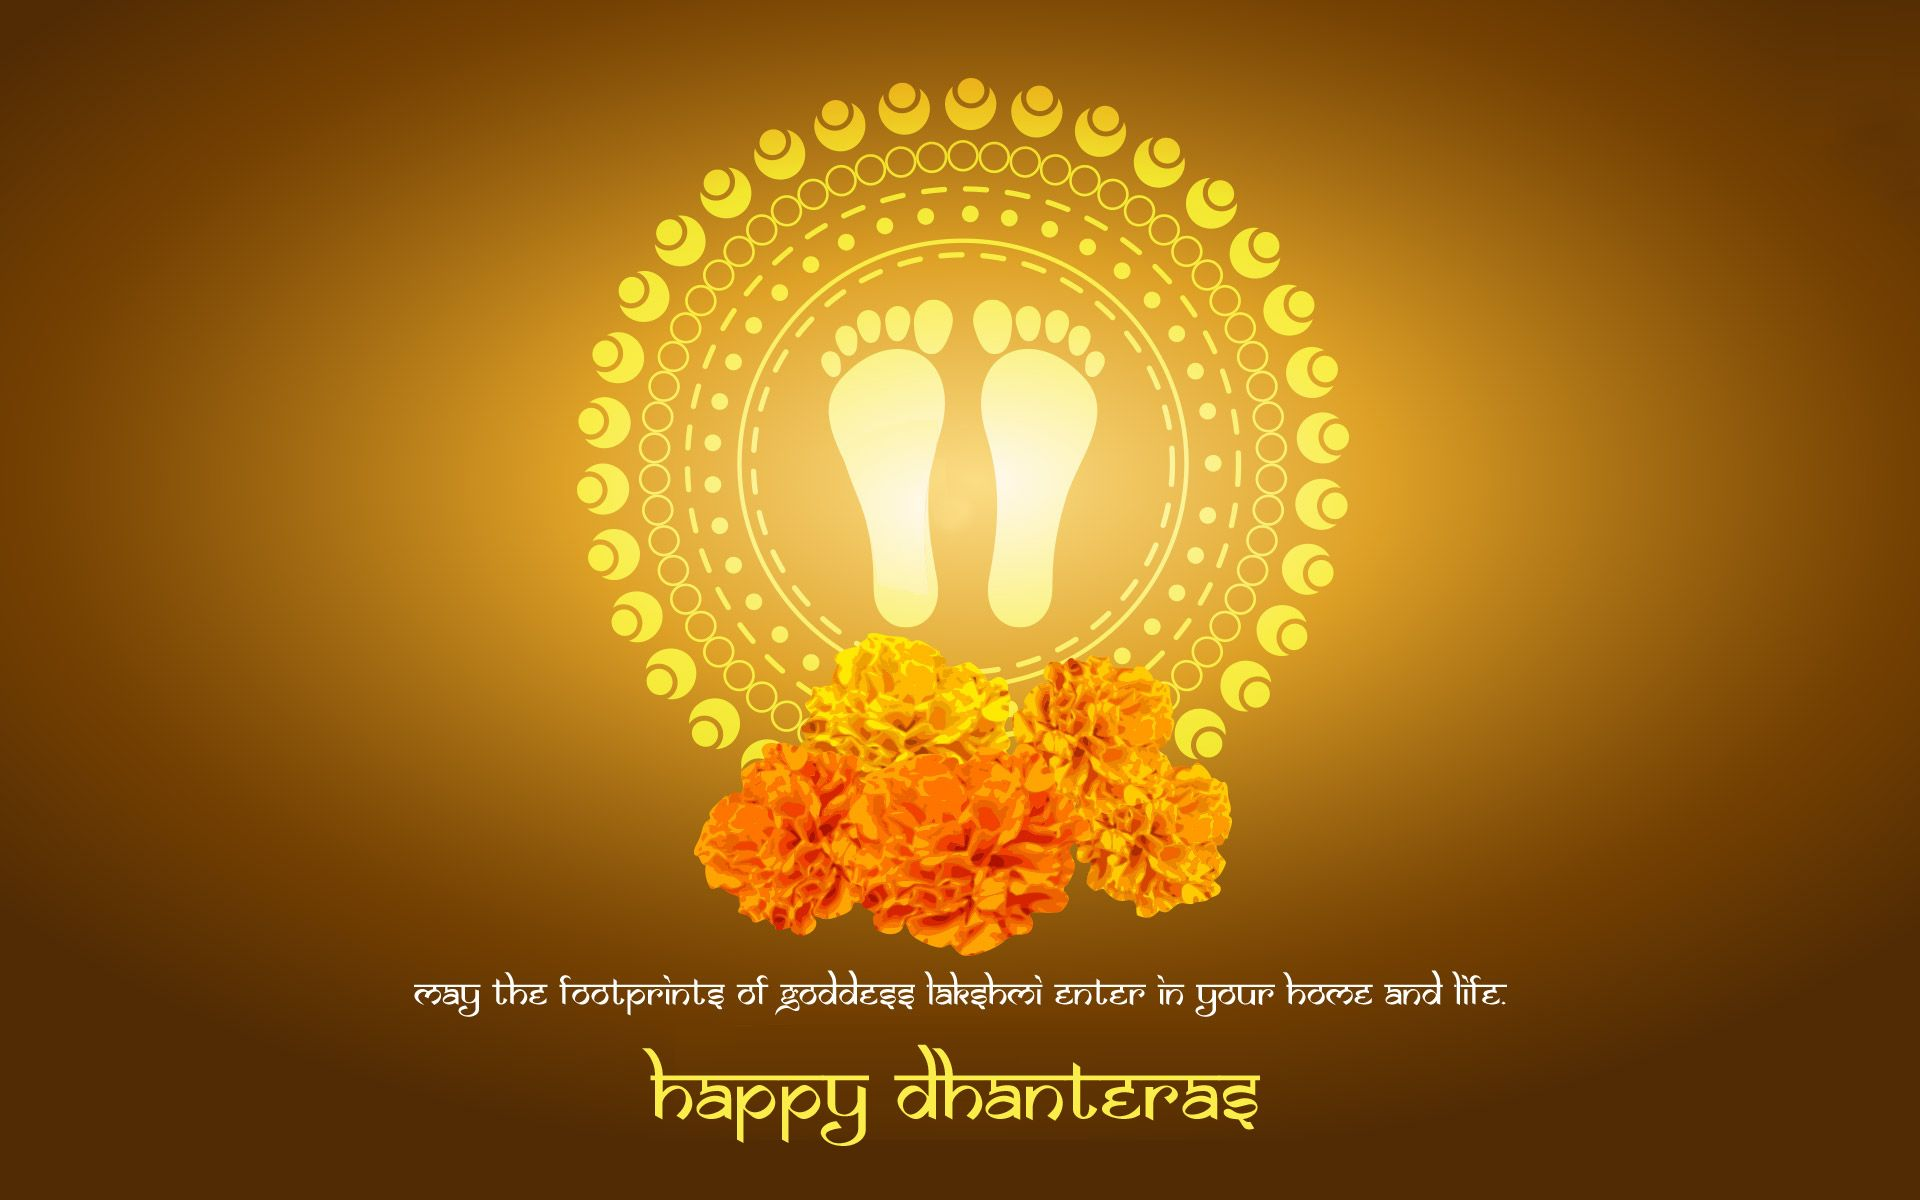 Happy Diwali And Dhanteras Wallpapers: May Dhanteras Festival Wishing You With Wealth